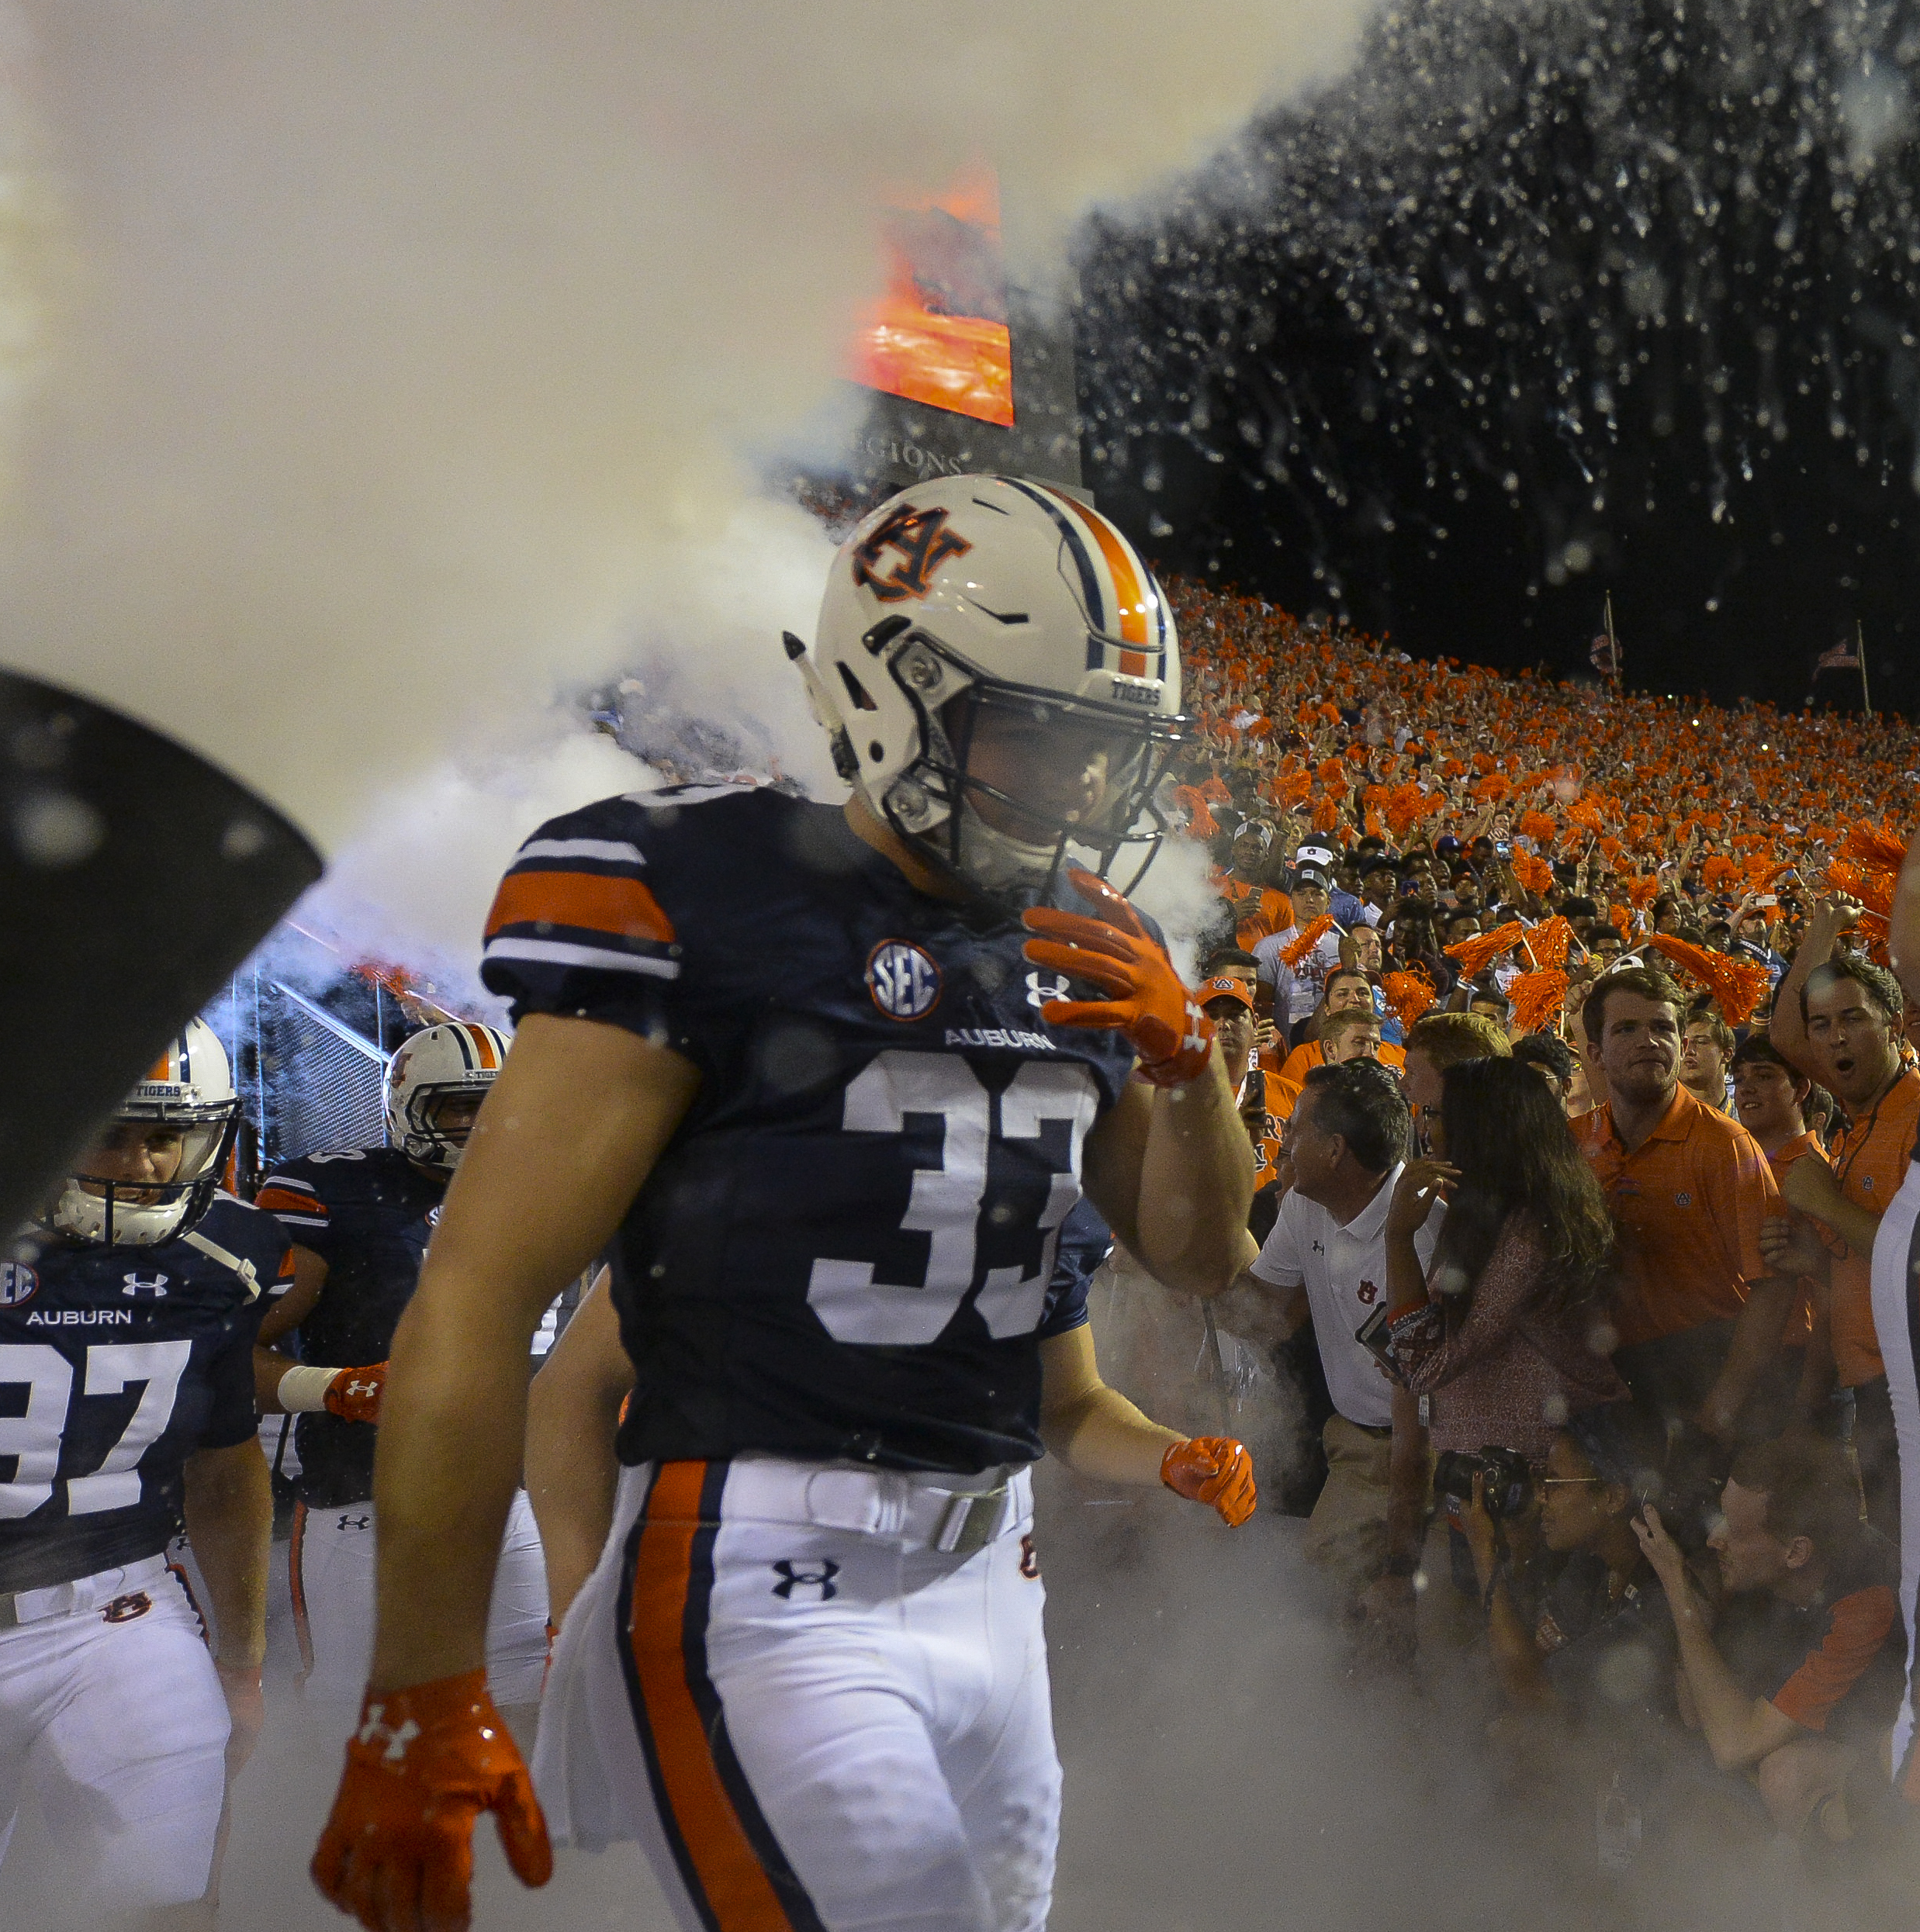 In this Sept. 3, 2016 photo, Auburn's Will Hastings (33) takes the field for an NCAA college football game against Clemson at Jordan-Hare Stadium in Auburn, Ala. Hastings doesn't really look the part of a Southeastern Conference receiver. Auburn's convert